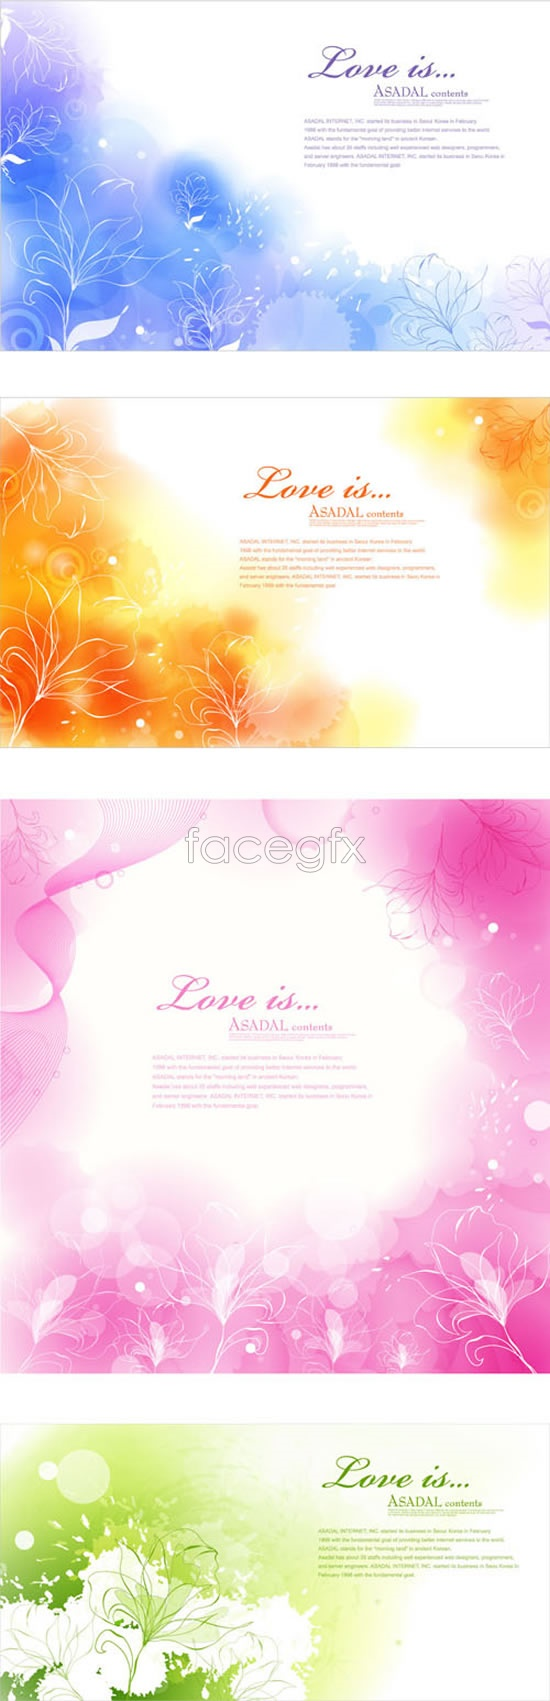 Line drawing of flowers fantasy backgrounds Vector